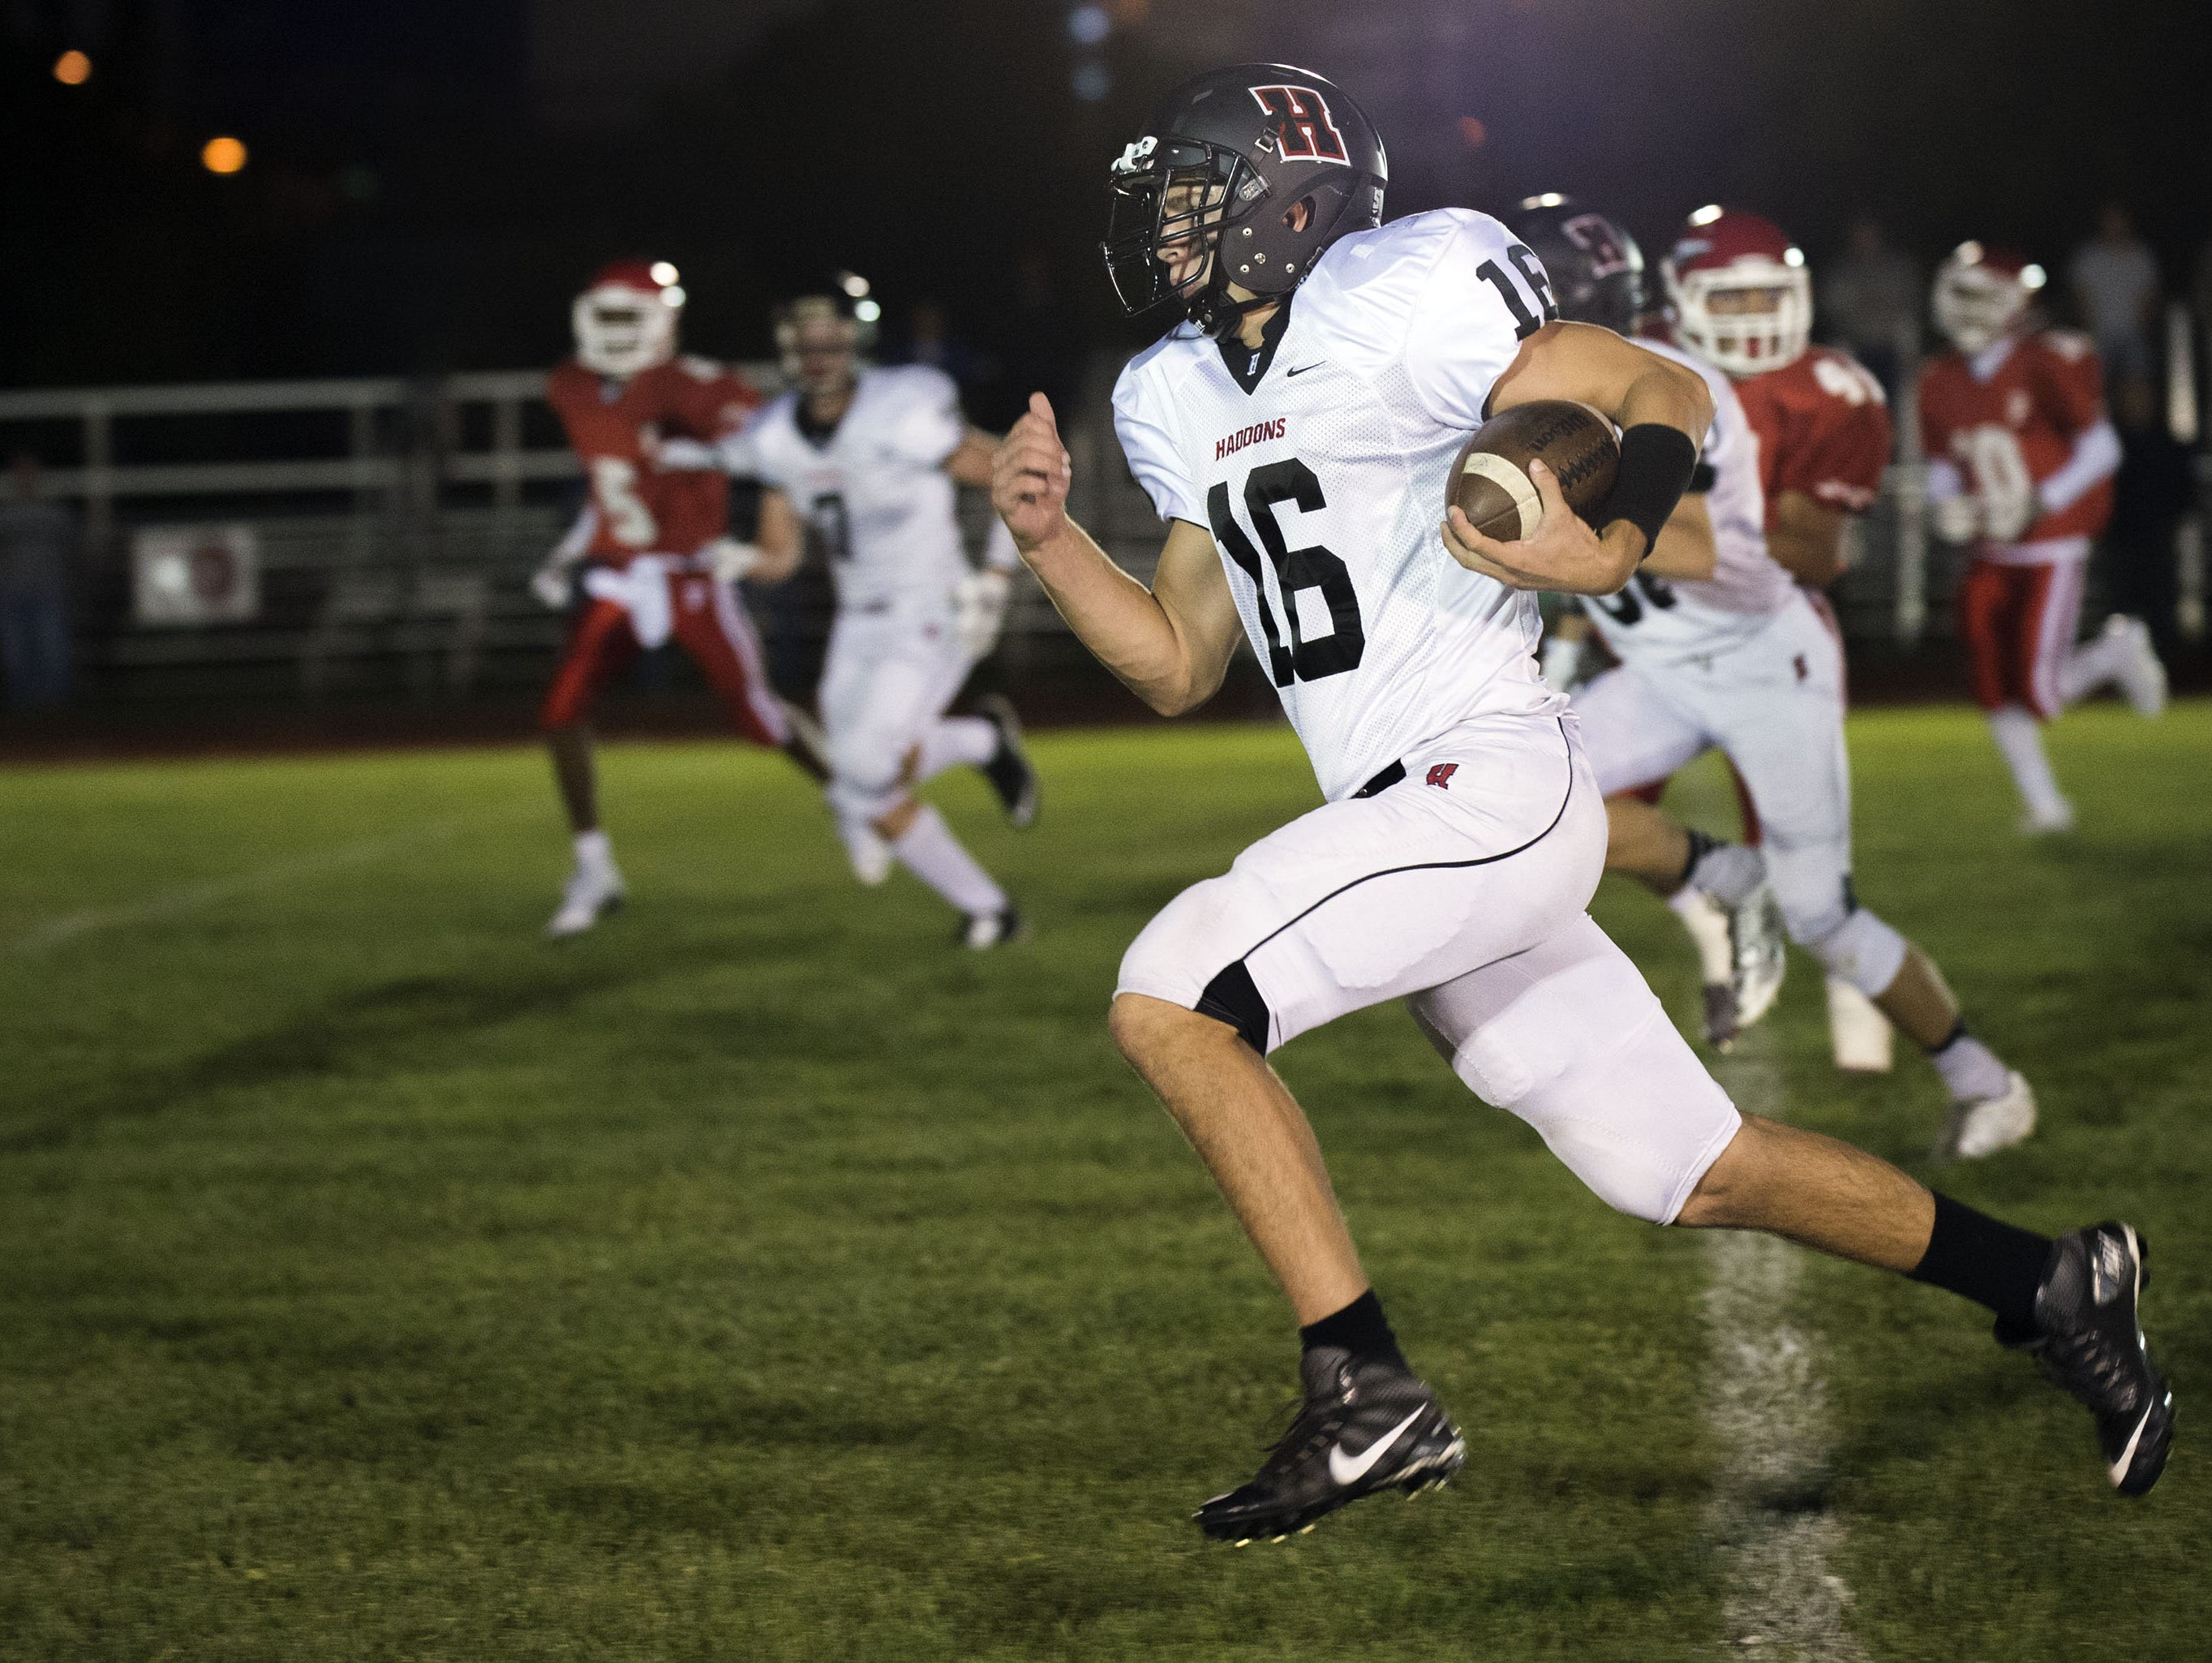 Haddonfield's Tommy Kadar rushes to the end zone Friday night against Paulsboro.